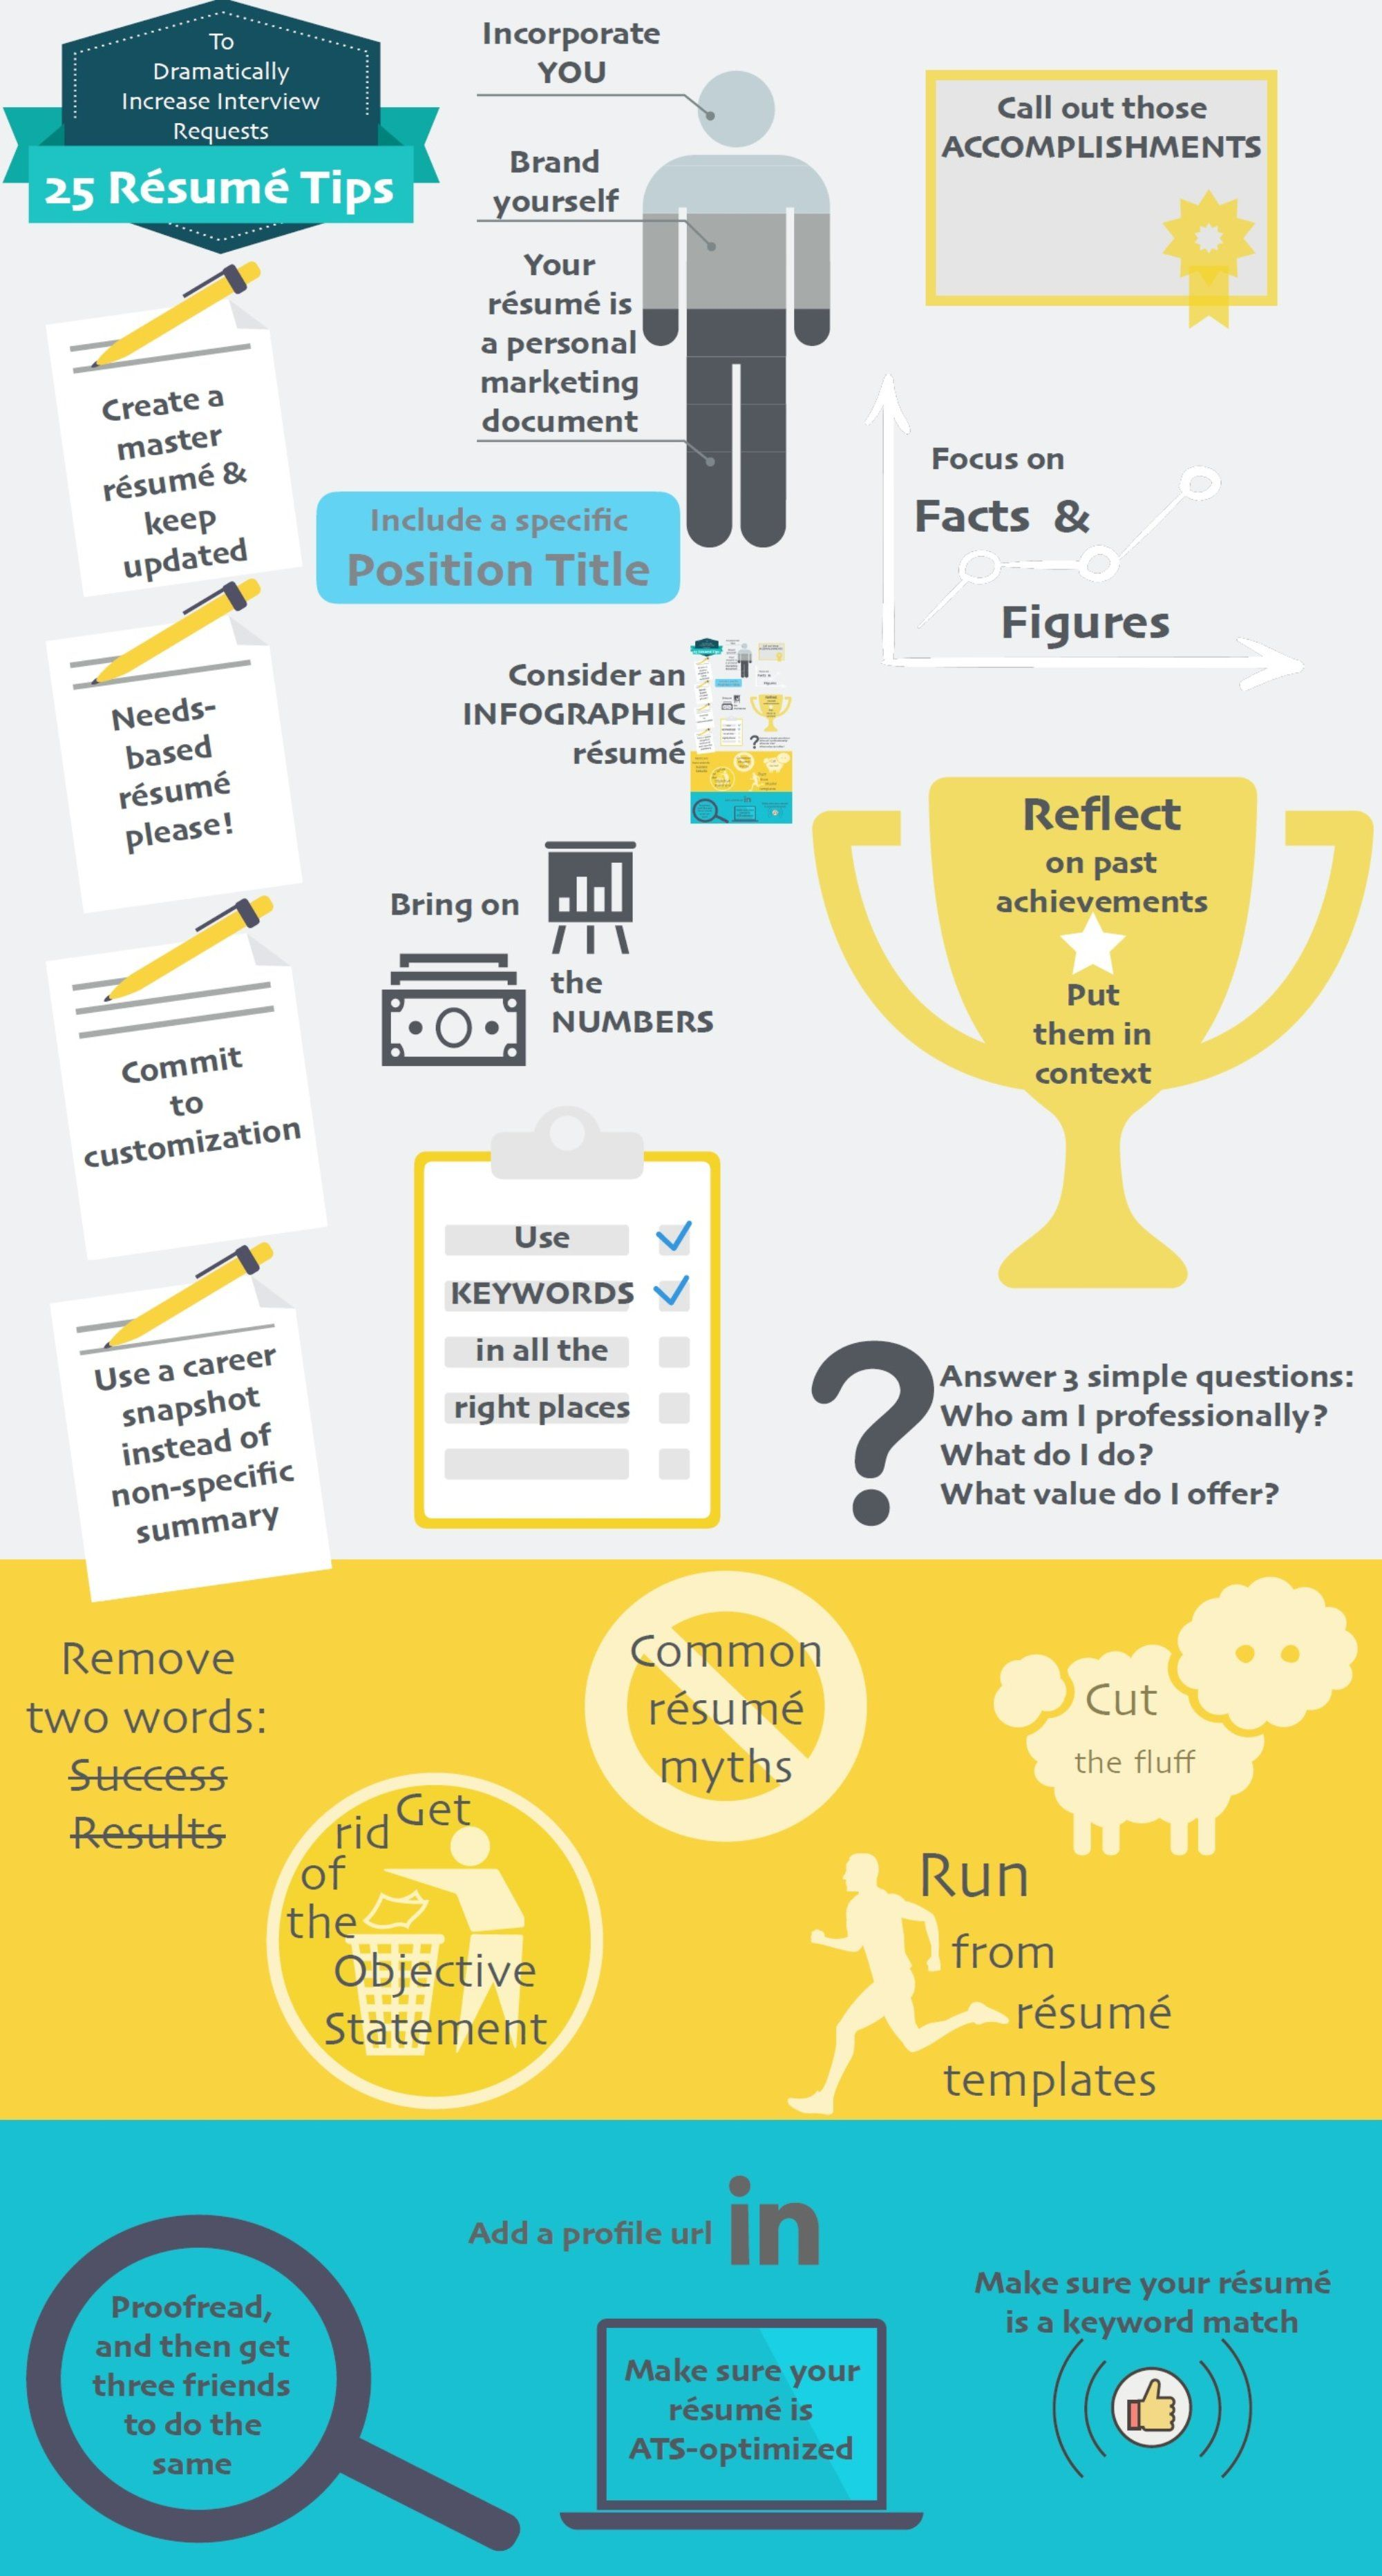 infographic 25 resume tips to dramatically increase interviews